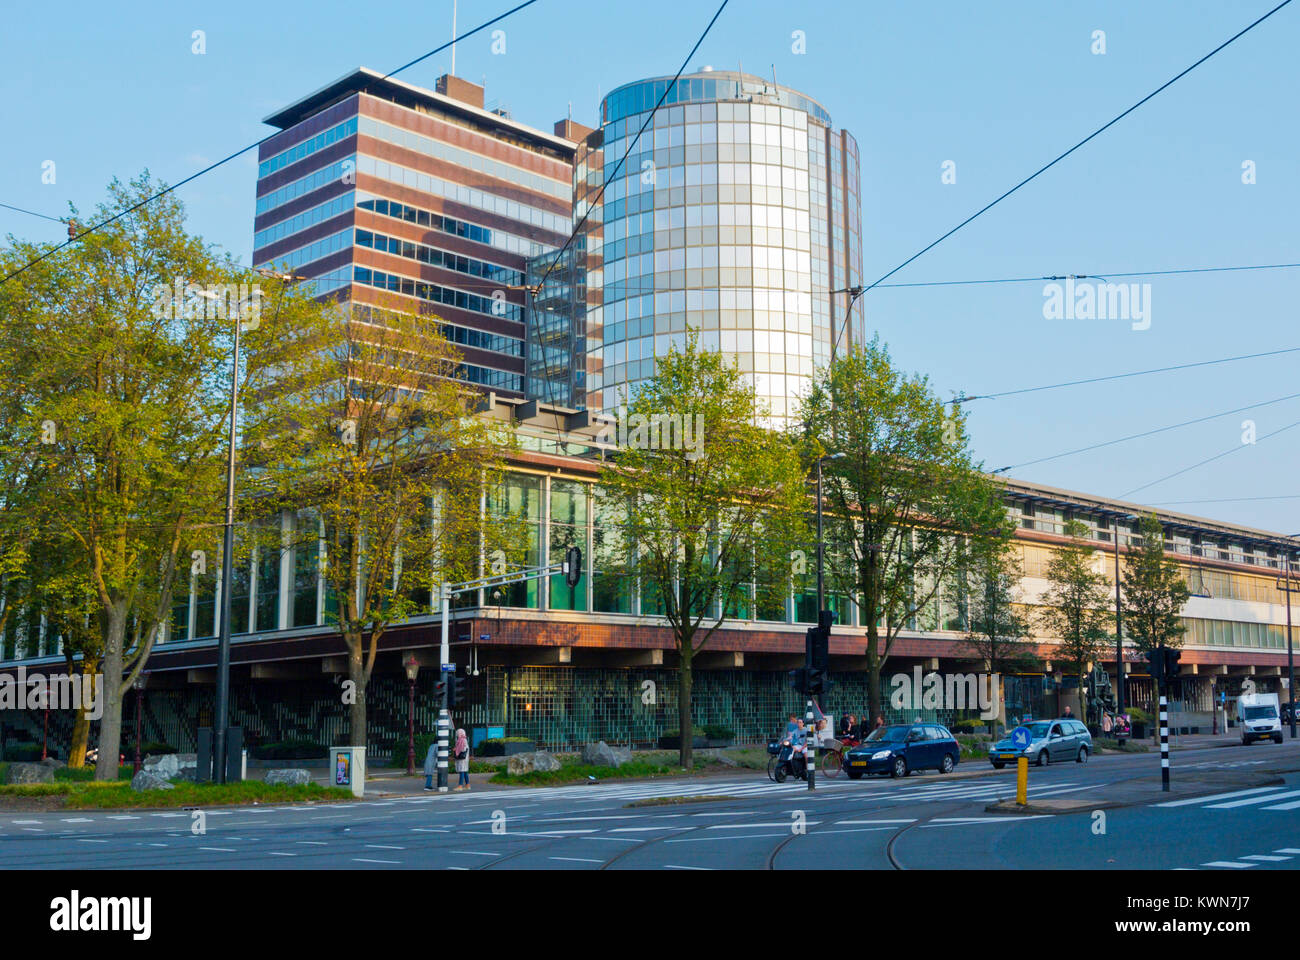 DNB, Dutch central bank, Westeinde, Amsterdam, The Netherlands - Stock Image